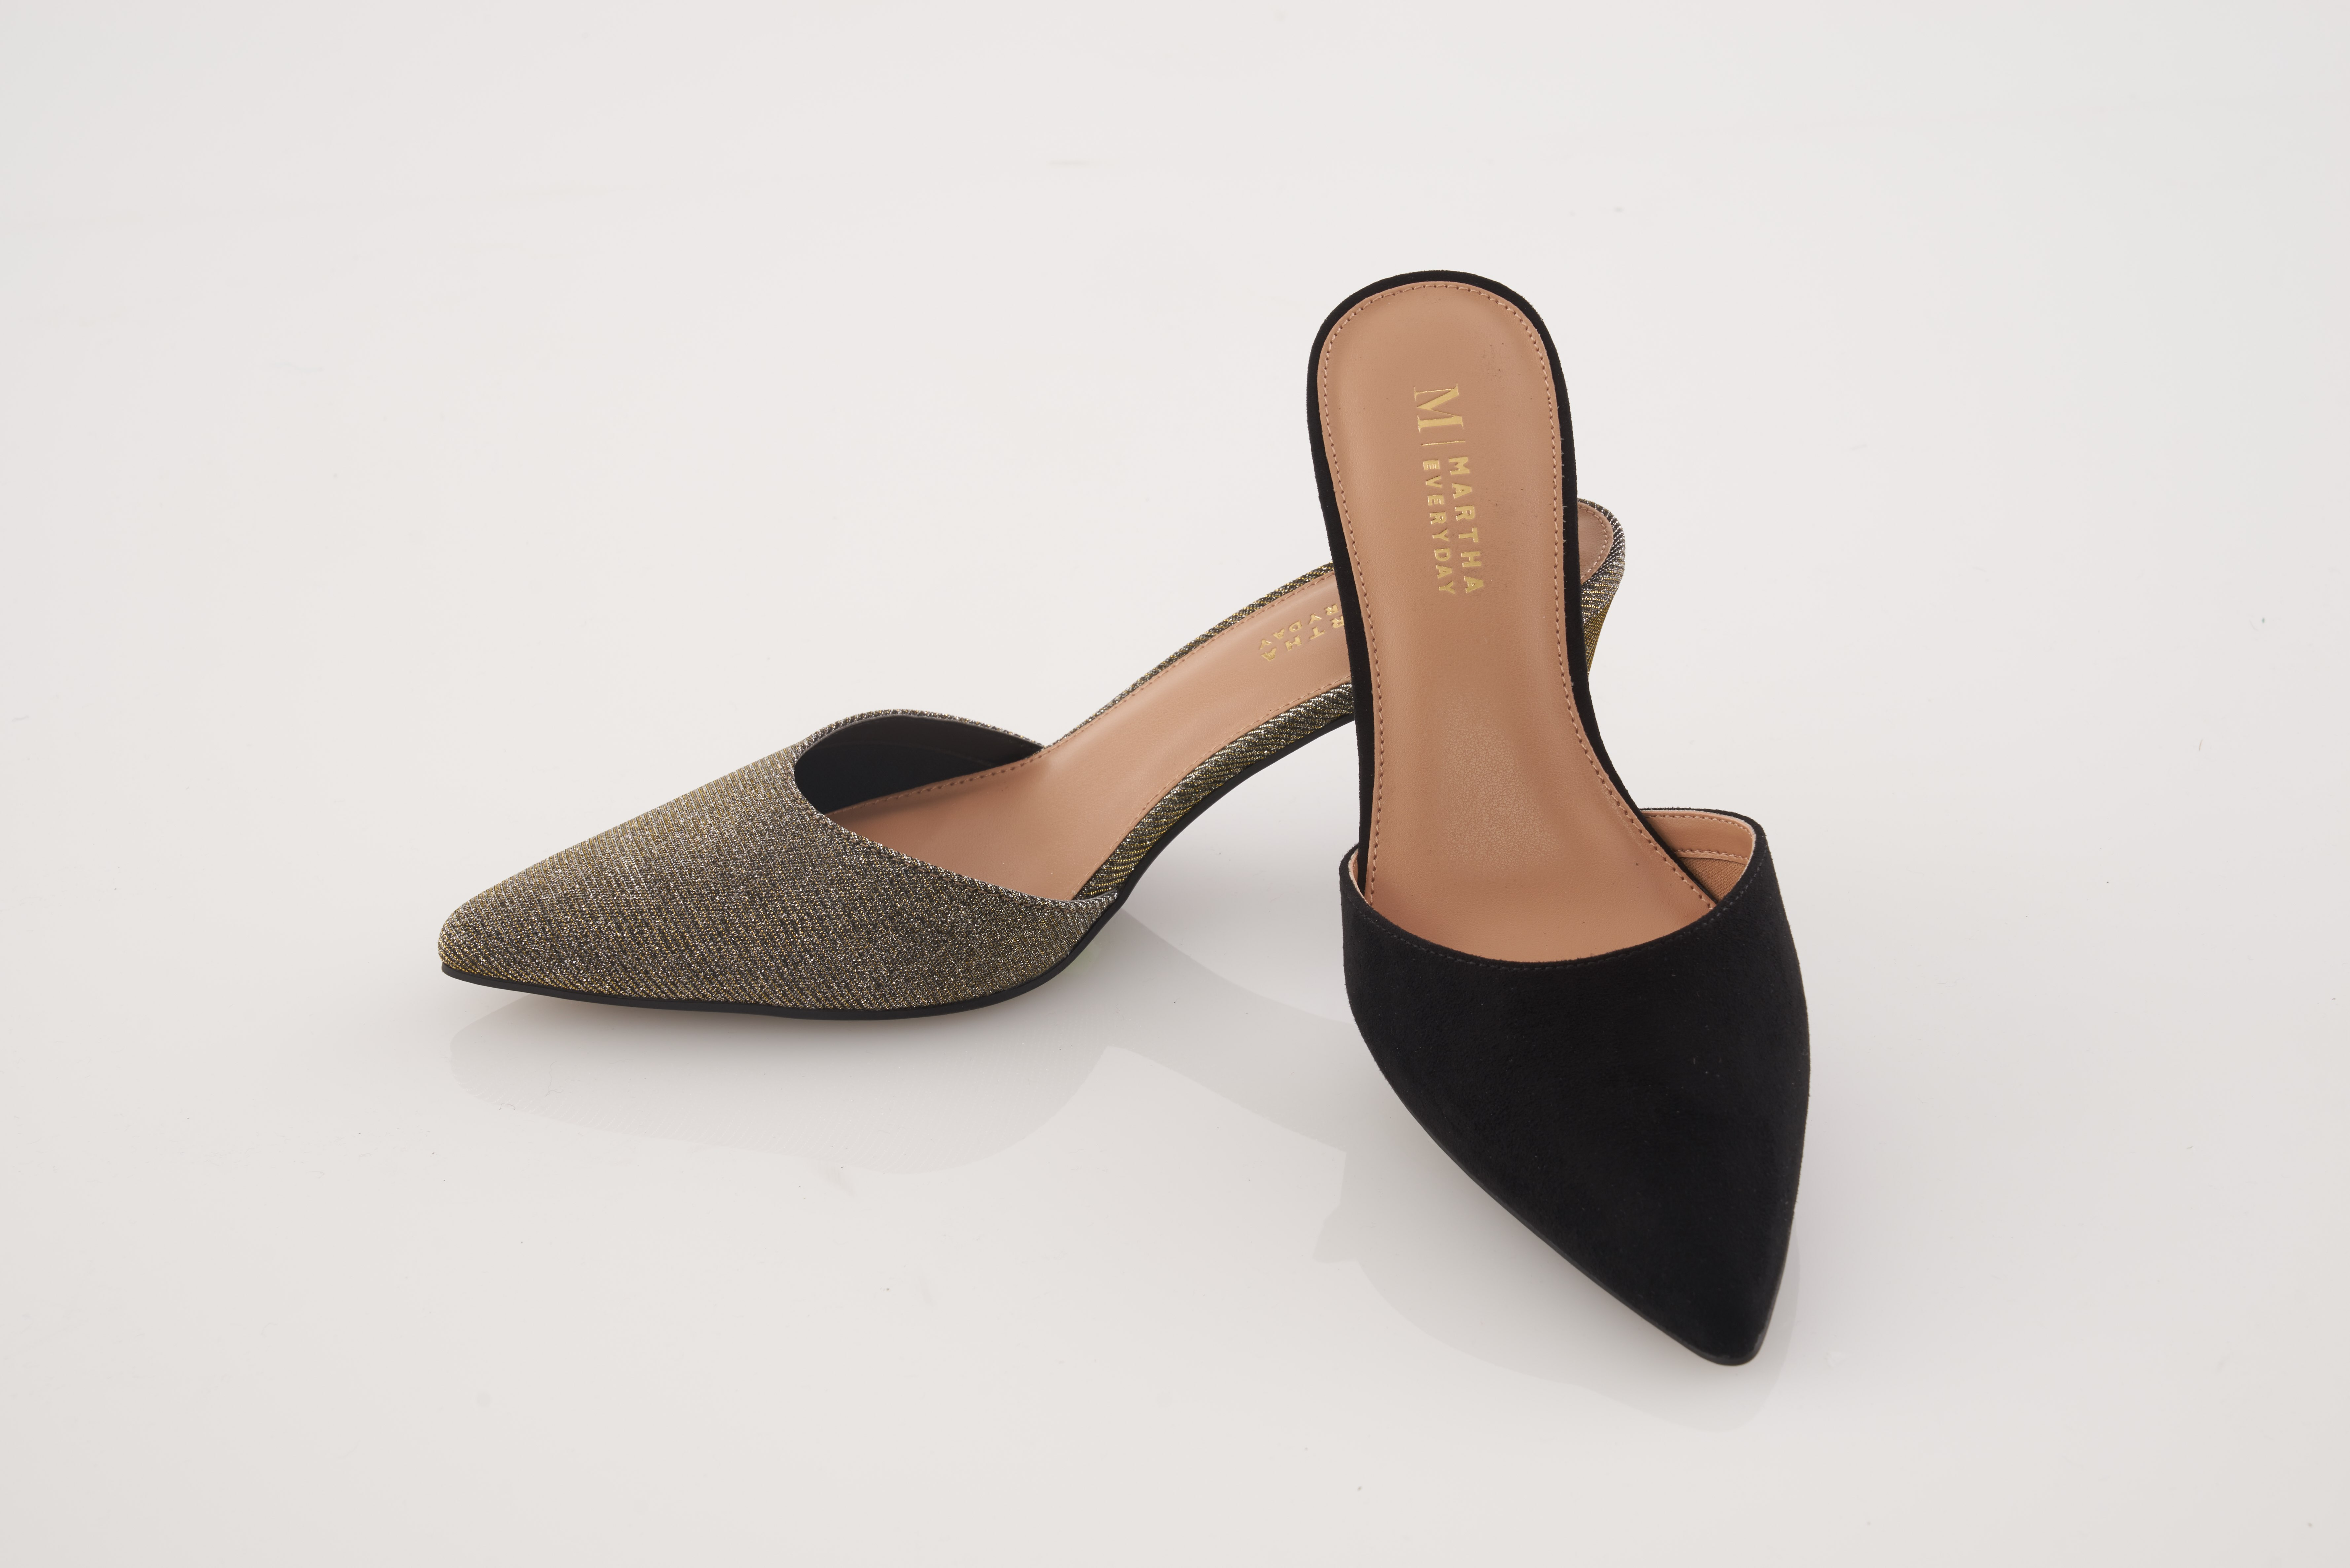 martha payless shoes